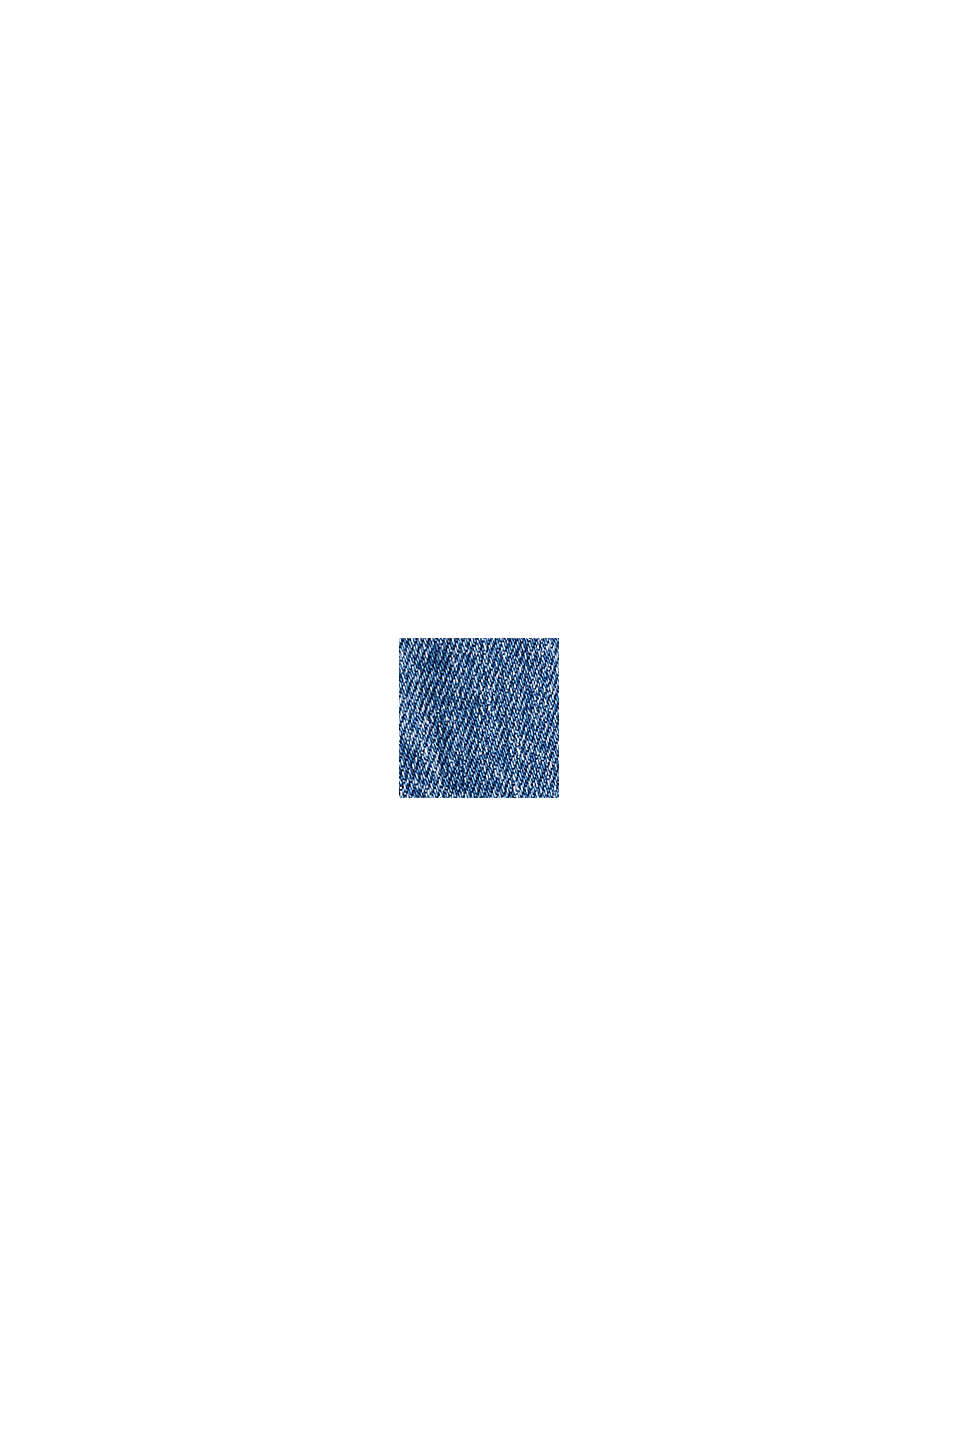 Giacca di jeans con comodo stretch, BLUE LIGHT WASHED, swatch